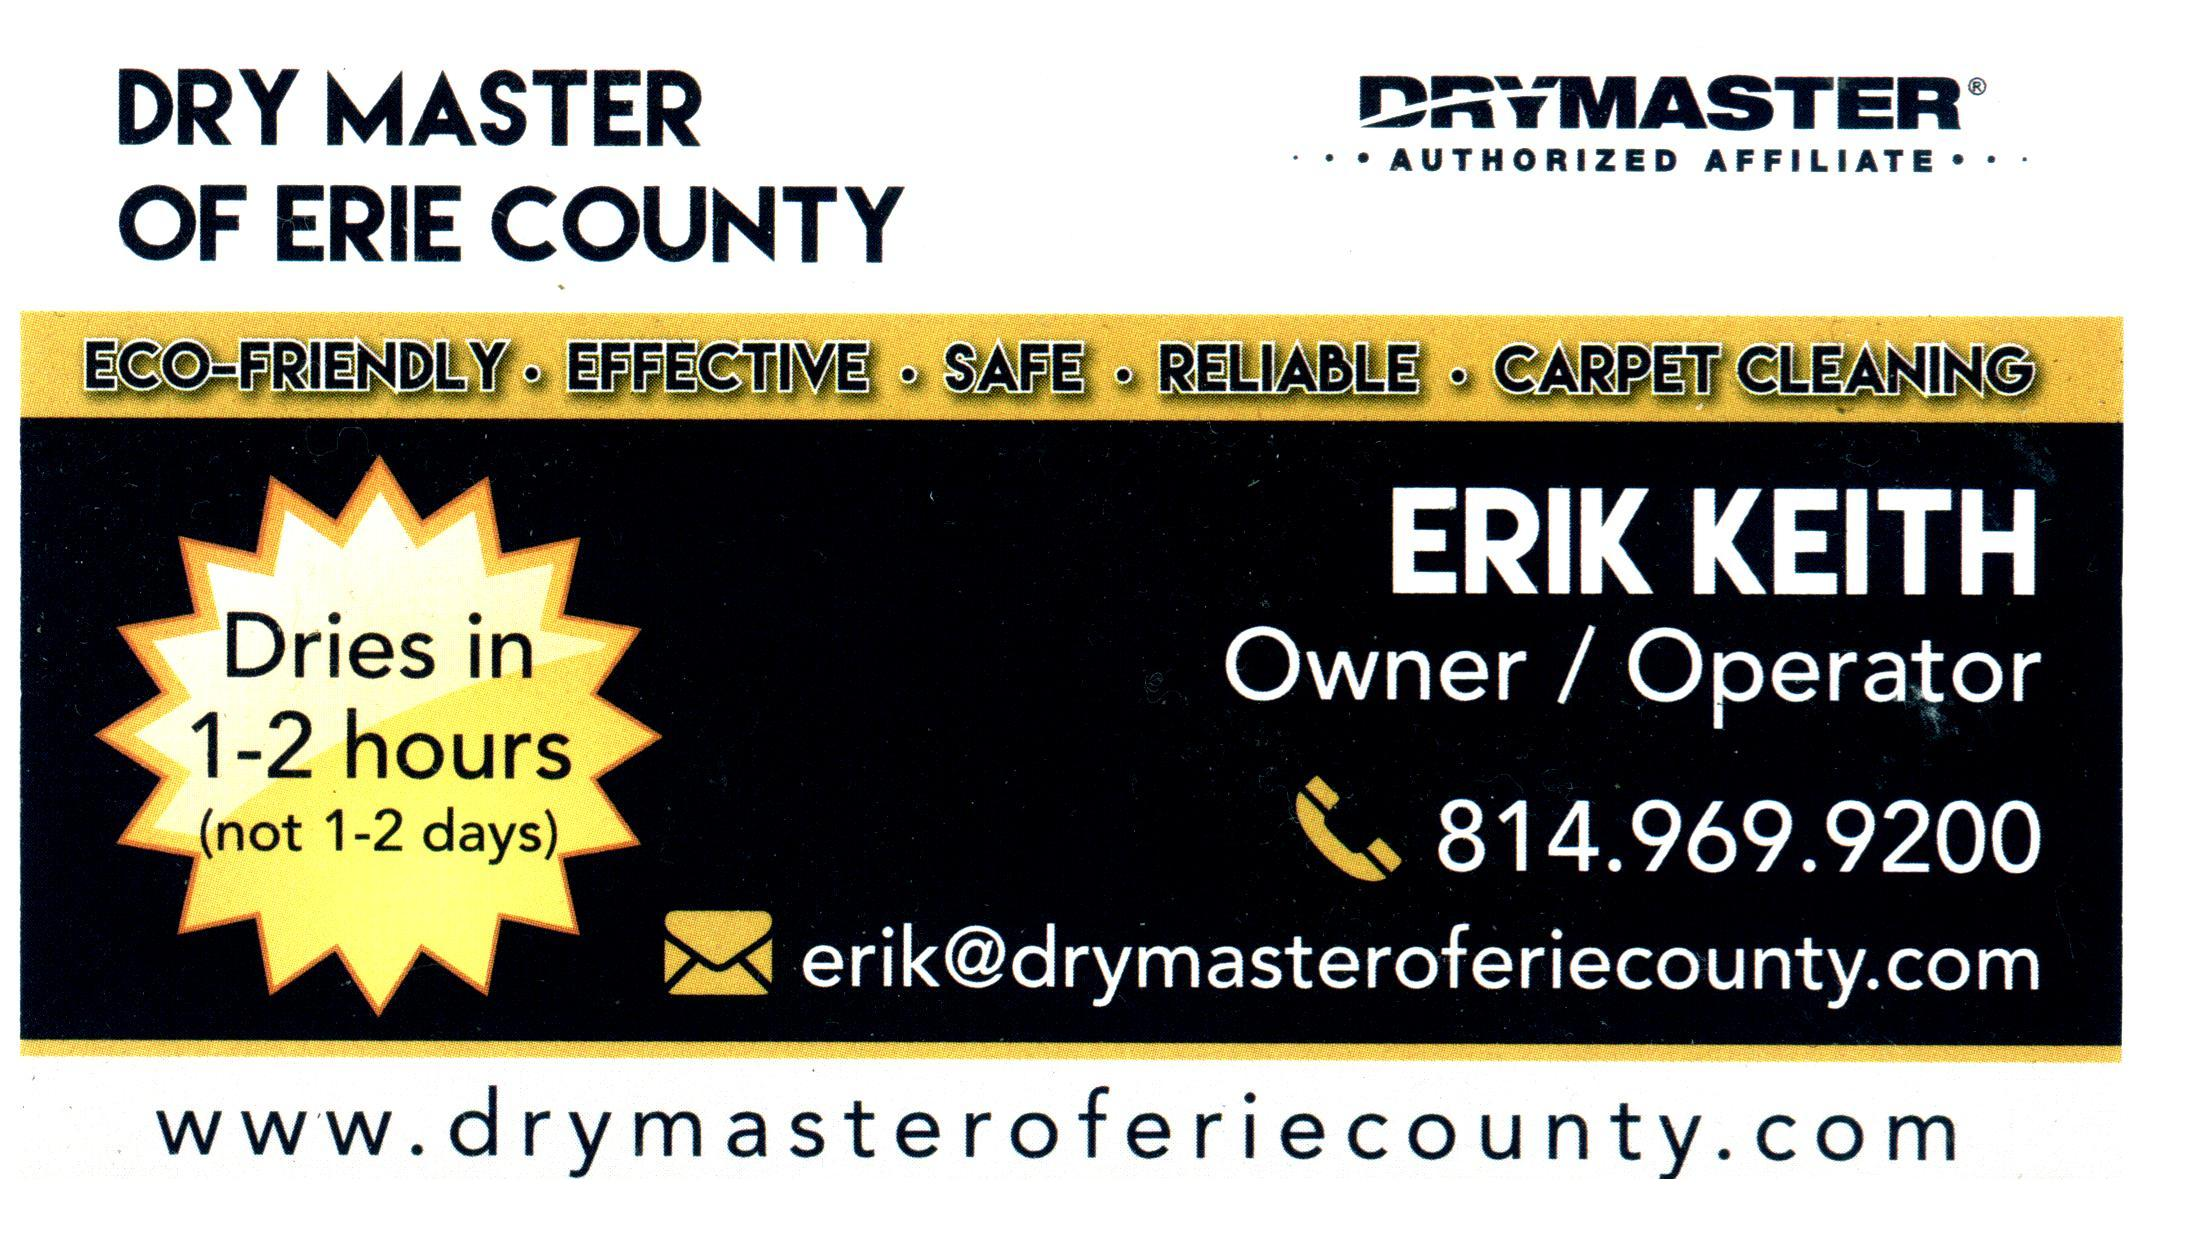 Drymaster of Erie County